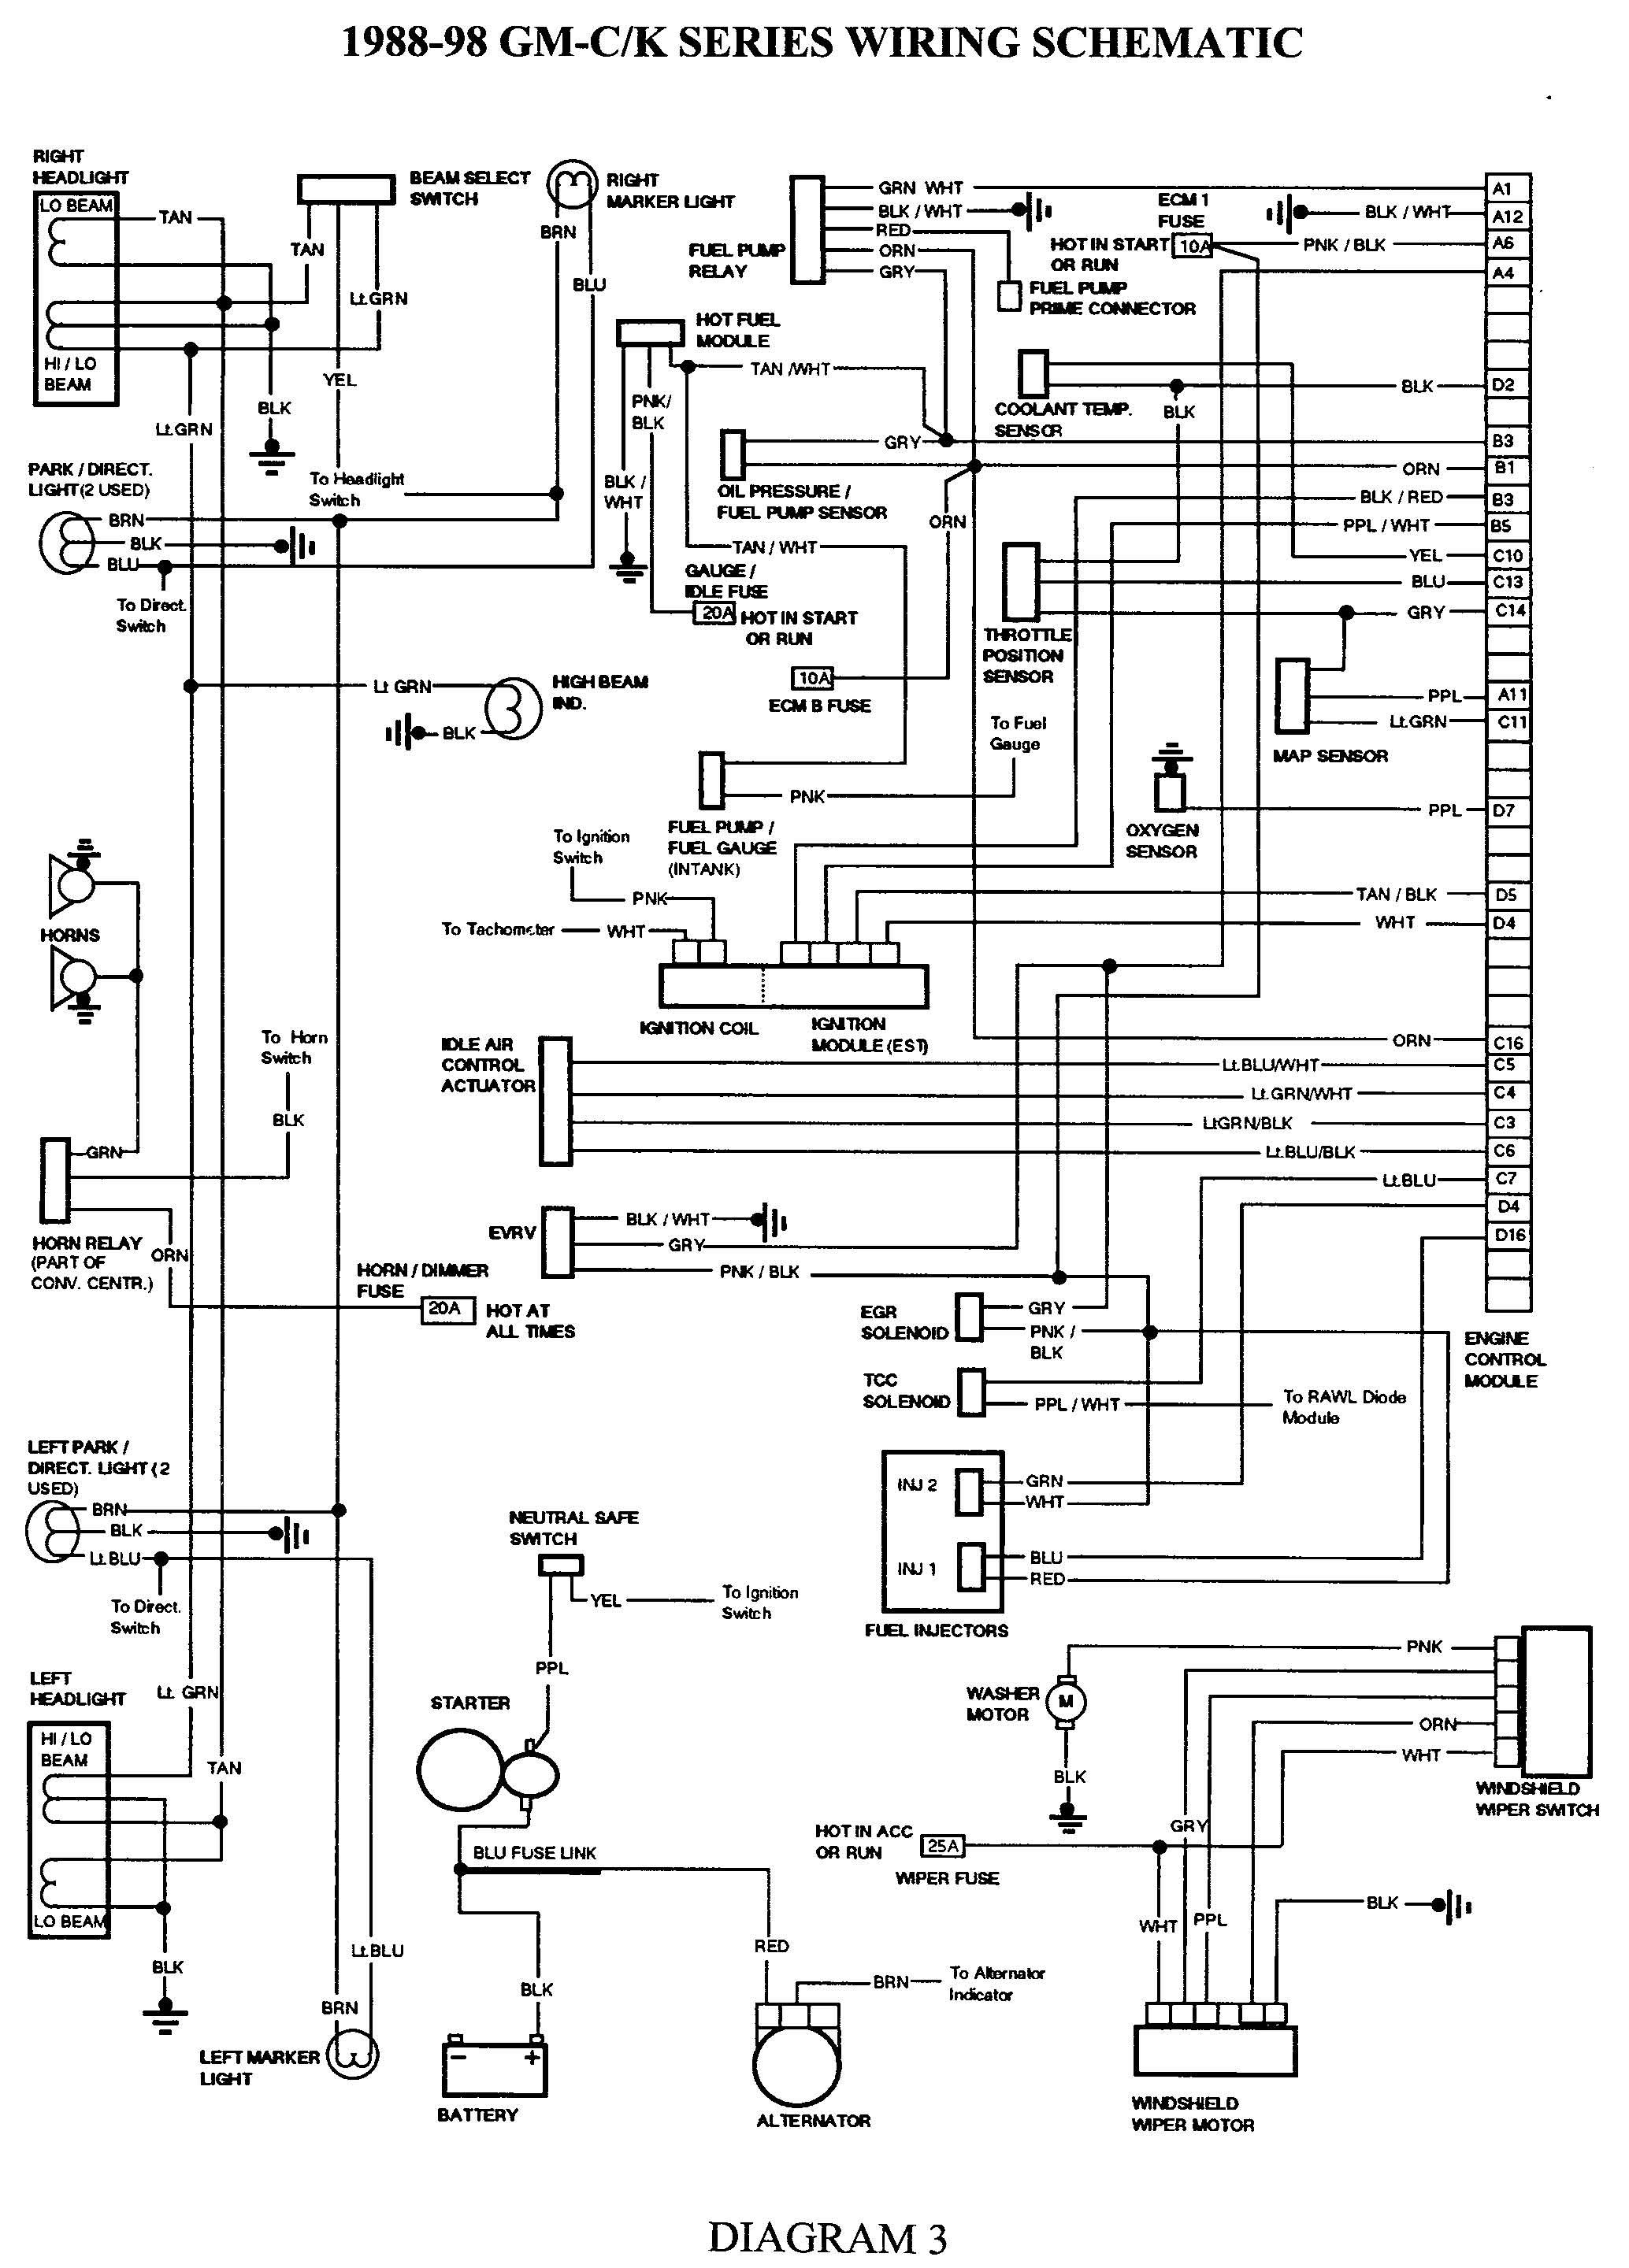 Pin on kc Abs Wiring Diagram Chevy Pickup on